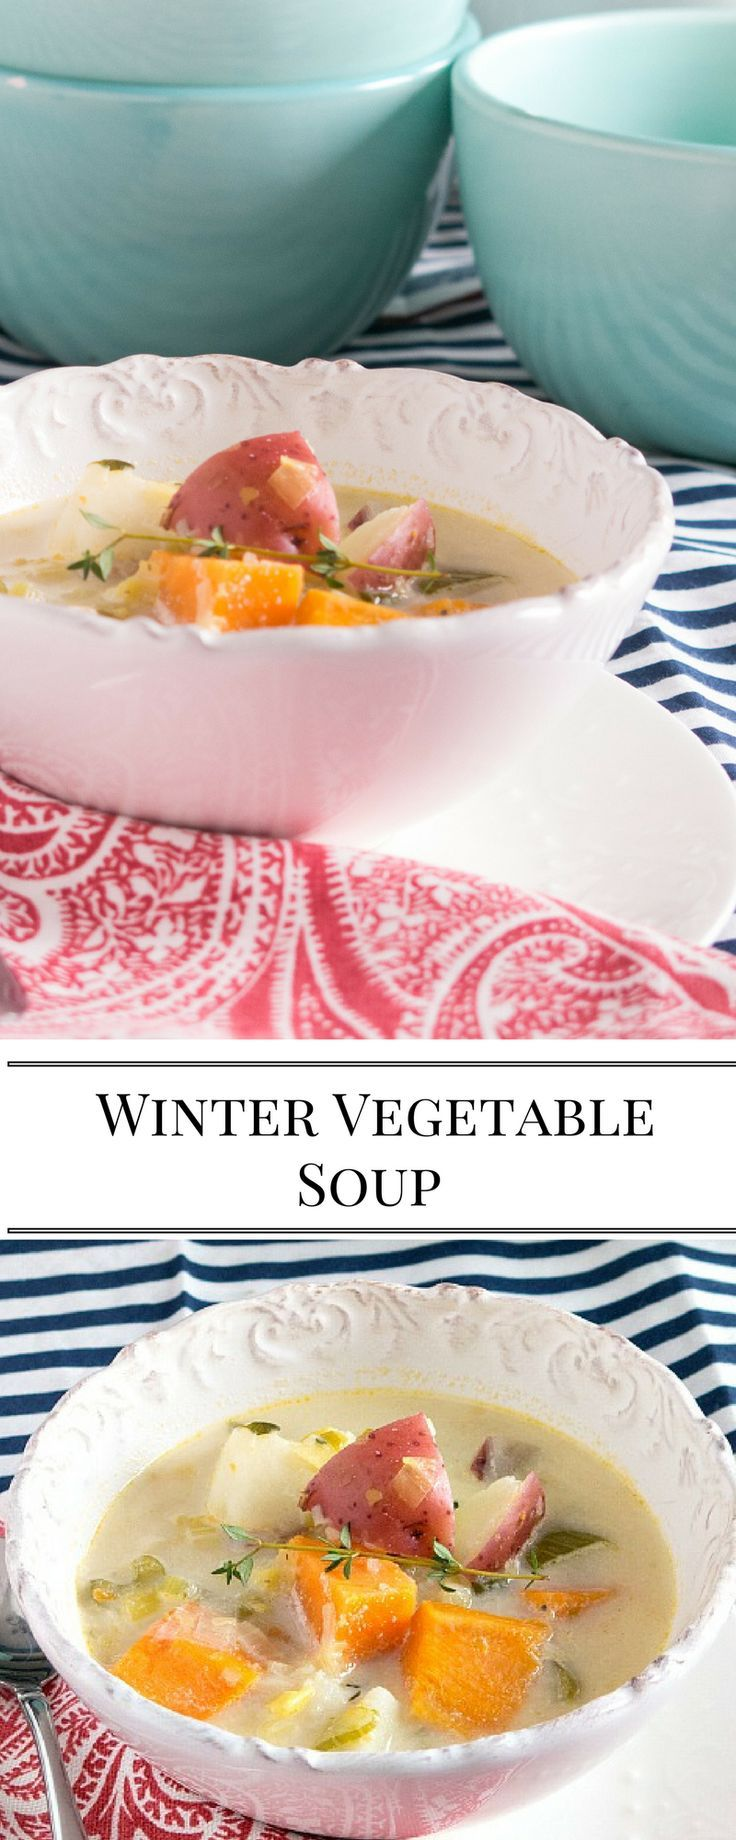 A rich and creamy vegetable soup full of sweet winter vegetables. Large batch, makes enough for a second meal or for the freezer.